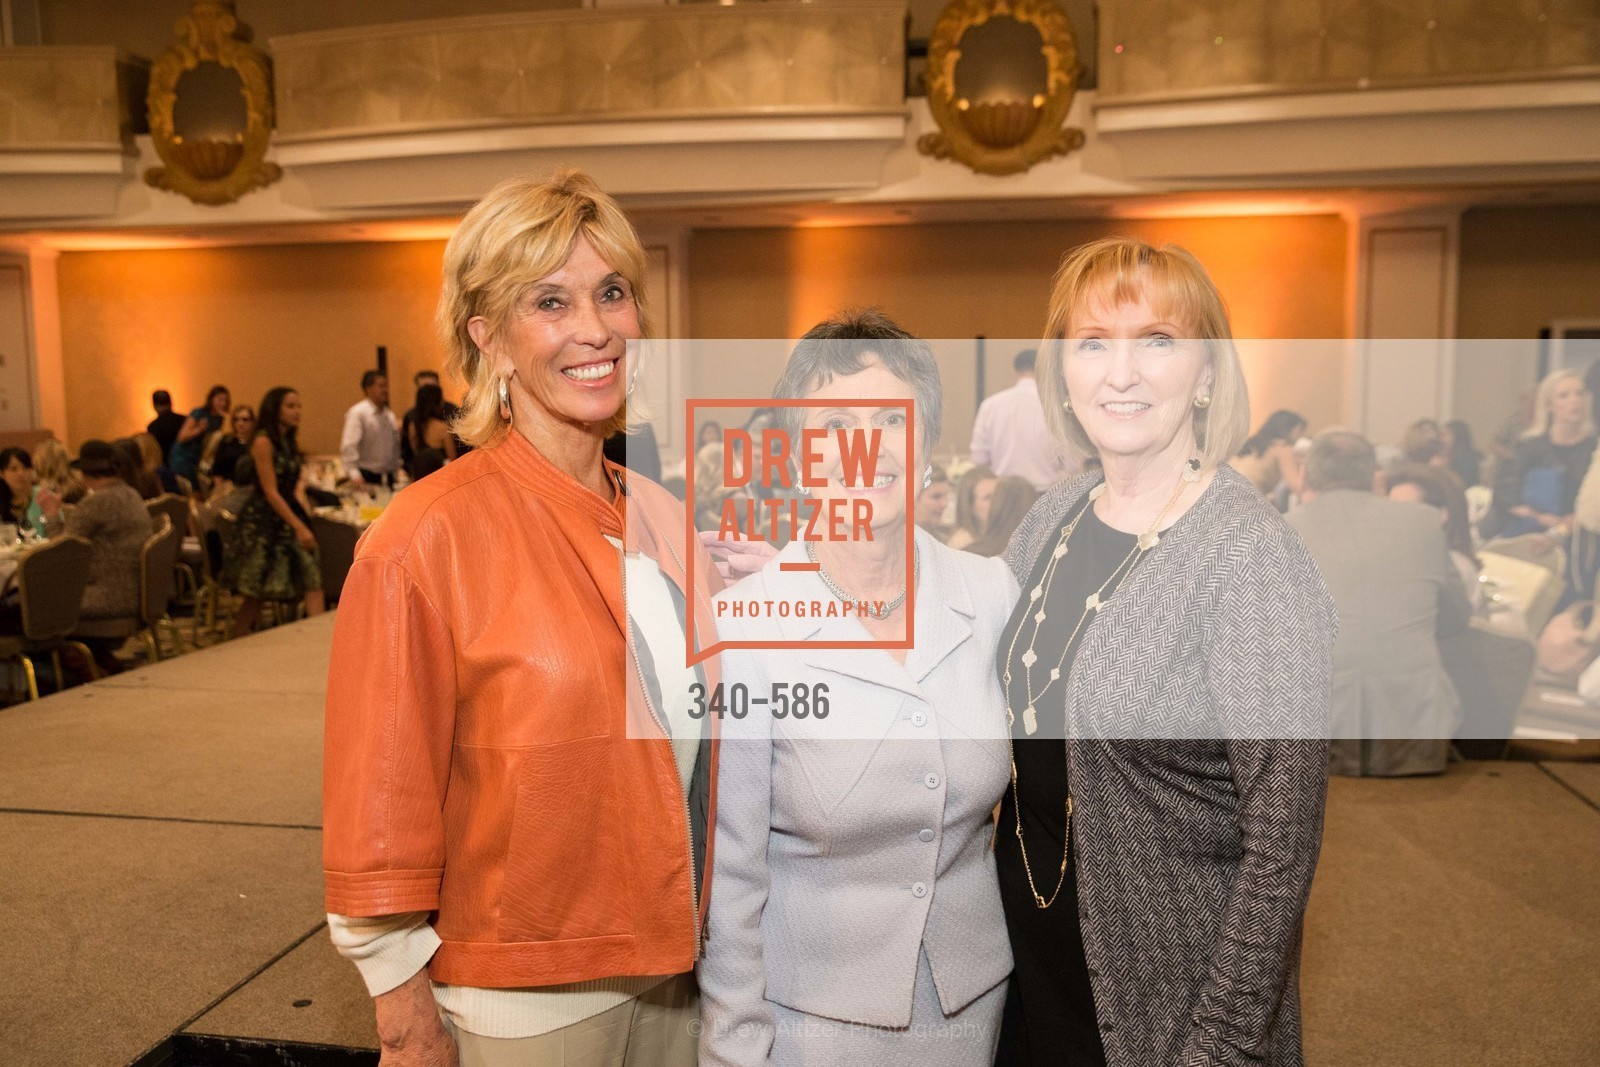 Mary Pilara, Carol Doll, Venetta Rohal, 2014 Bay Area ARTHRITIS AUXILLIARY Benefit & Fashion Show, US, October 1st, 2014,Drew Altizer, Drew Altizer Photography, full-service agency, private events, San Francisco photographer, photographer california